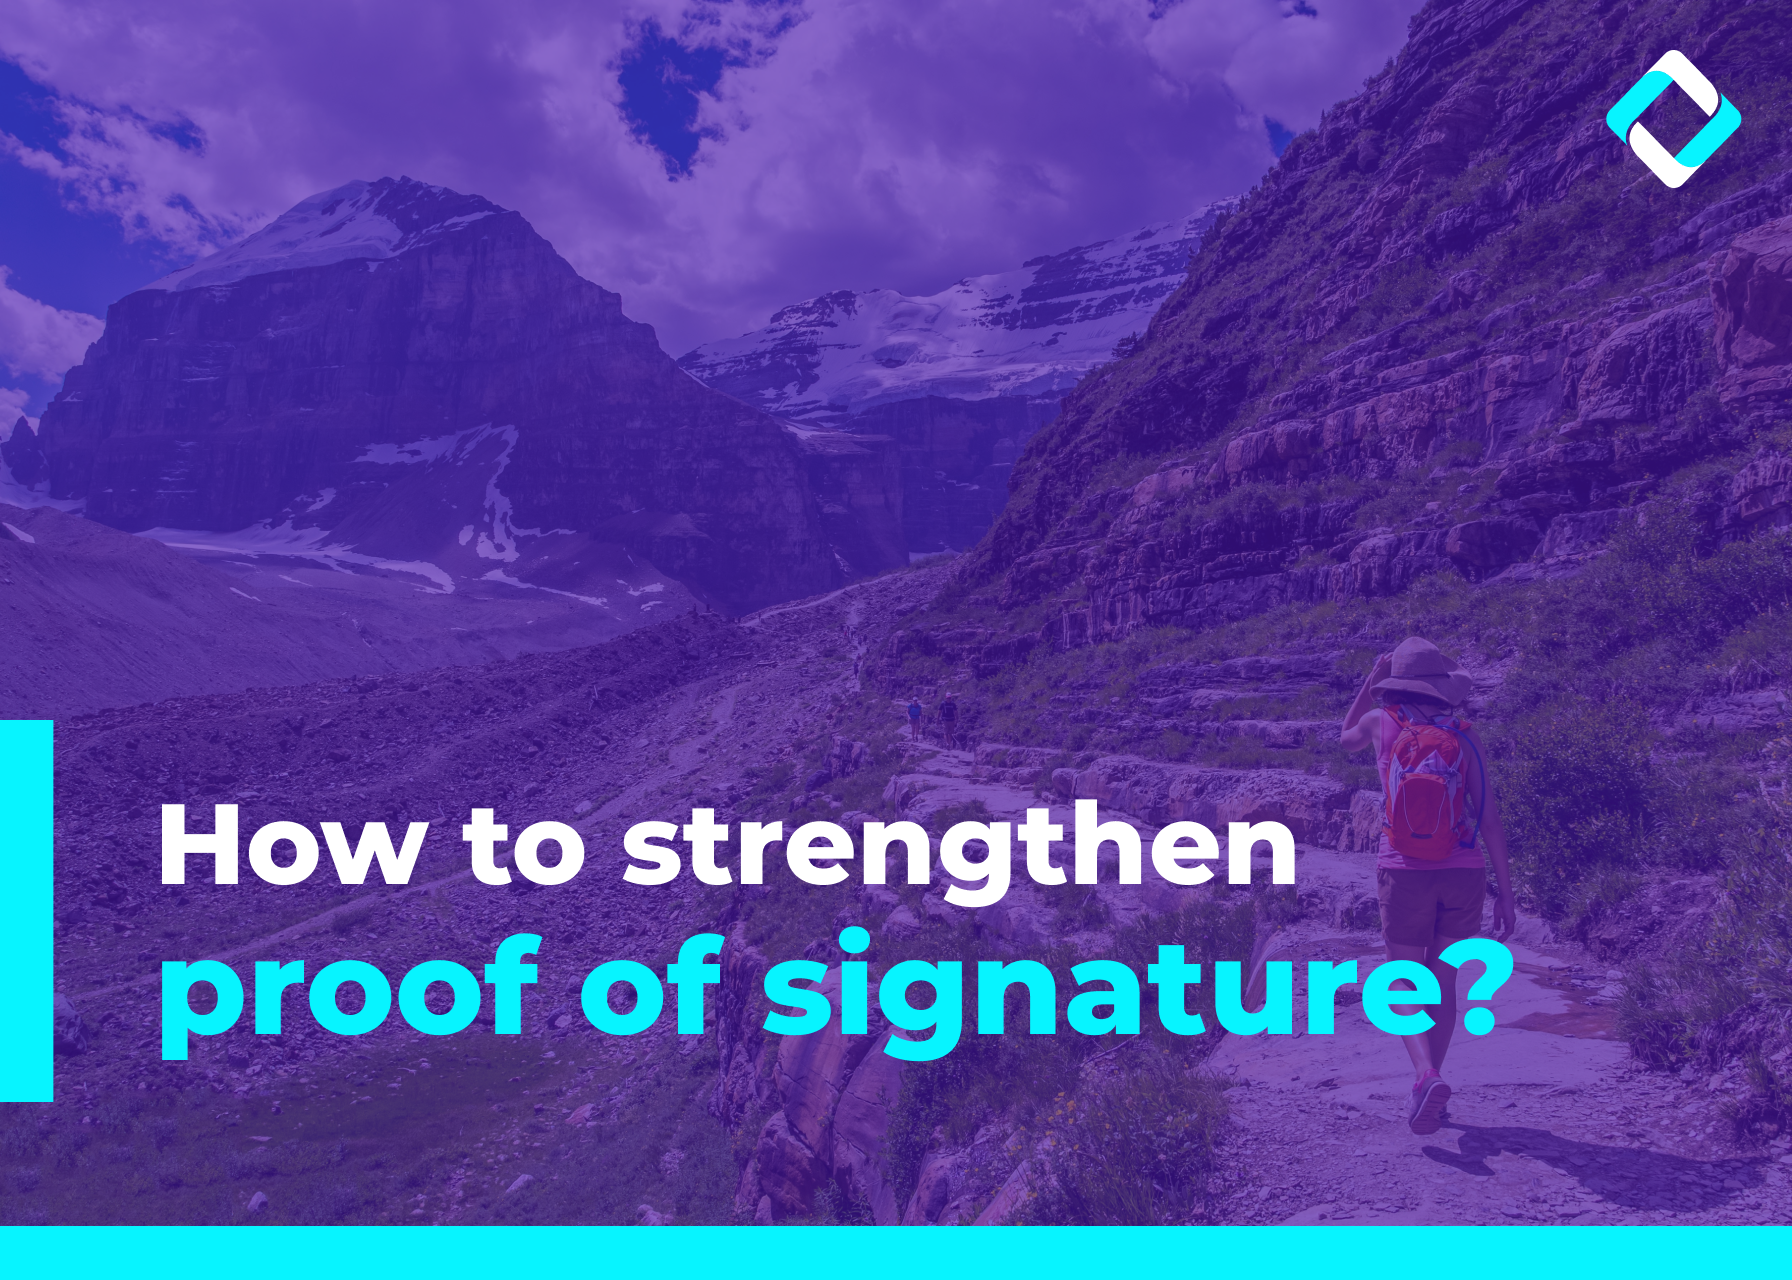 How to strengthen proof of signature?